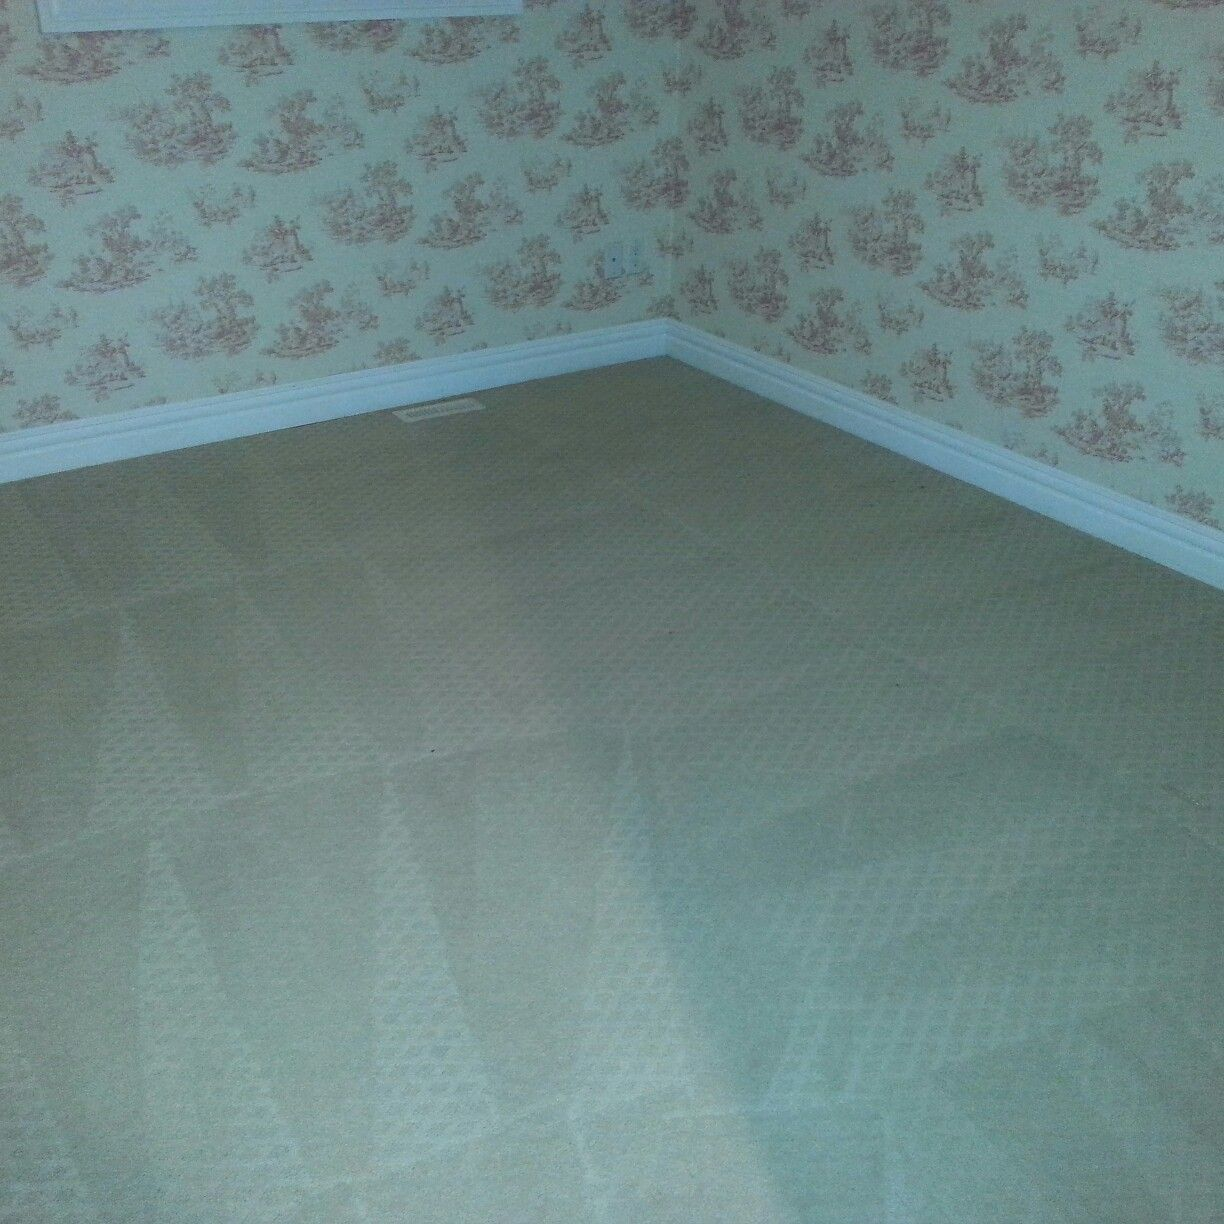 Carpet Cleaning Services How To Clean Carpet Carpet Cleaning Service Nisku